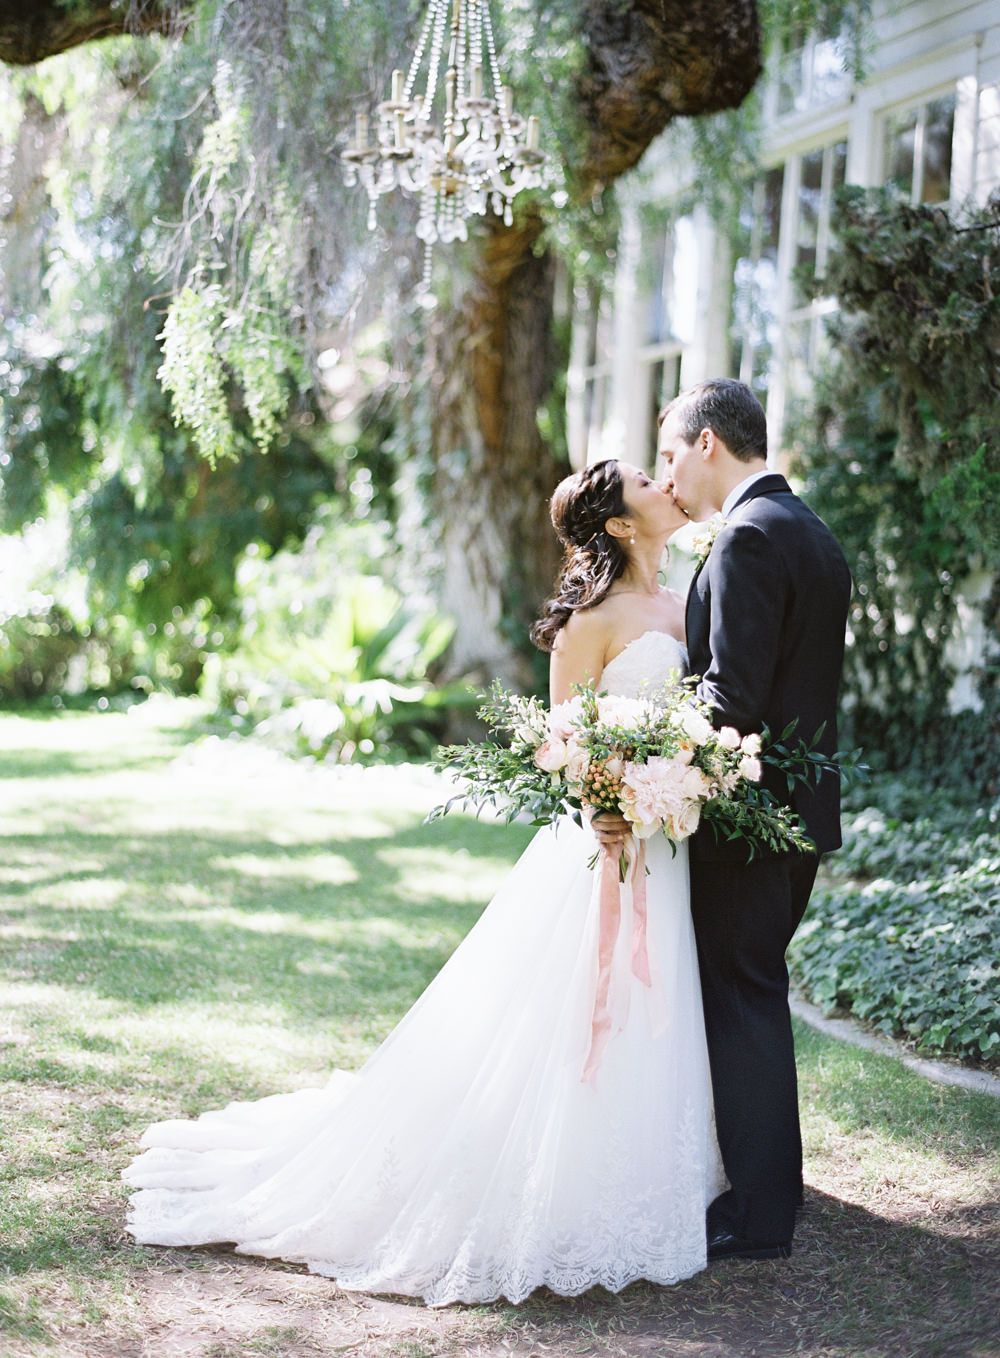 RomanticGardenWedding_WhiskersandWillow_044.jpg